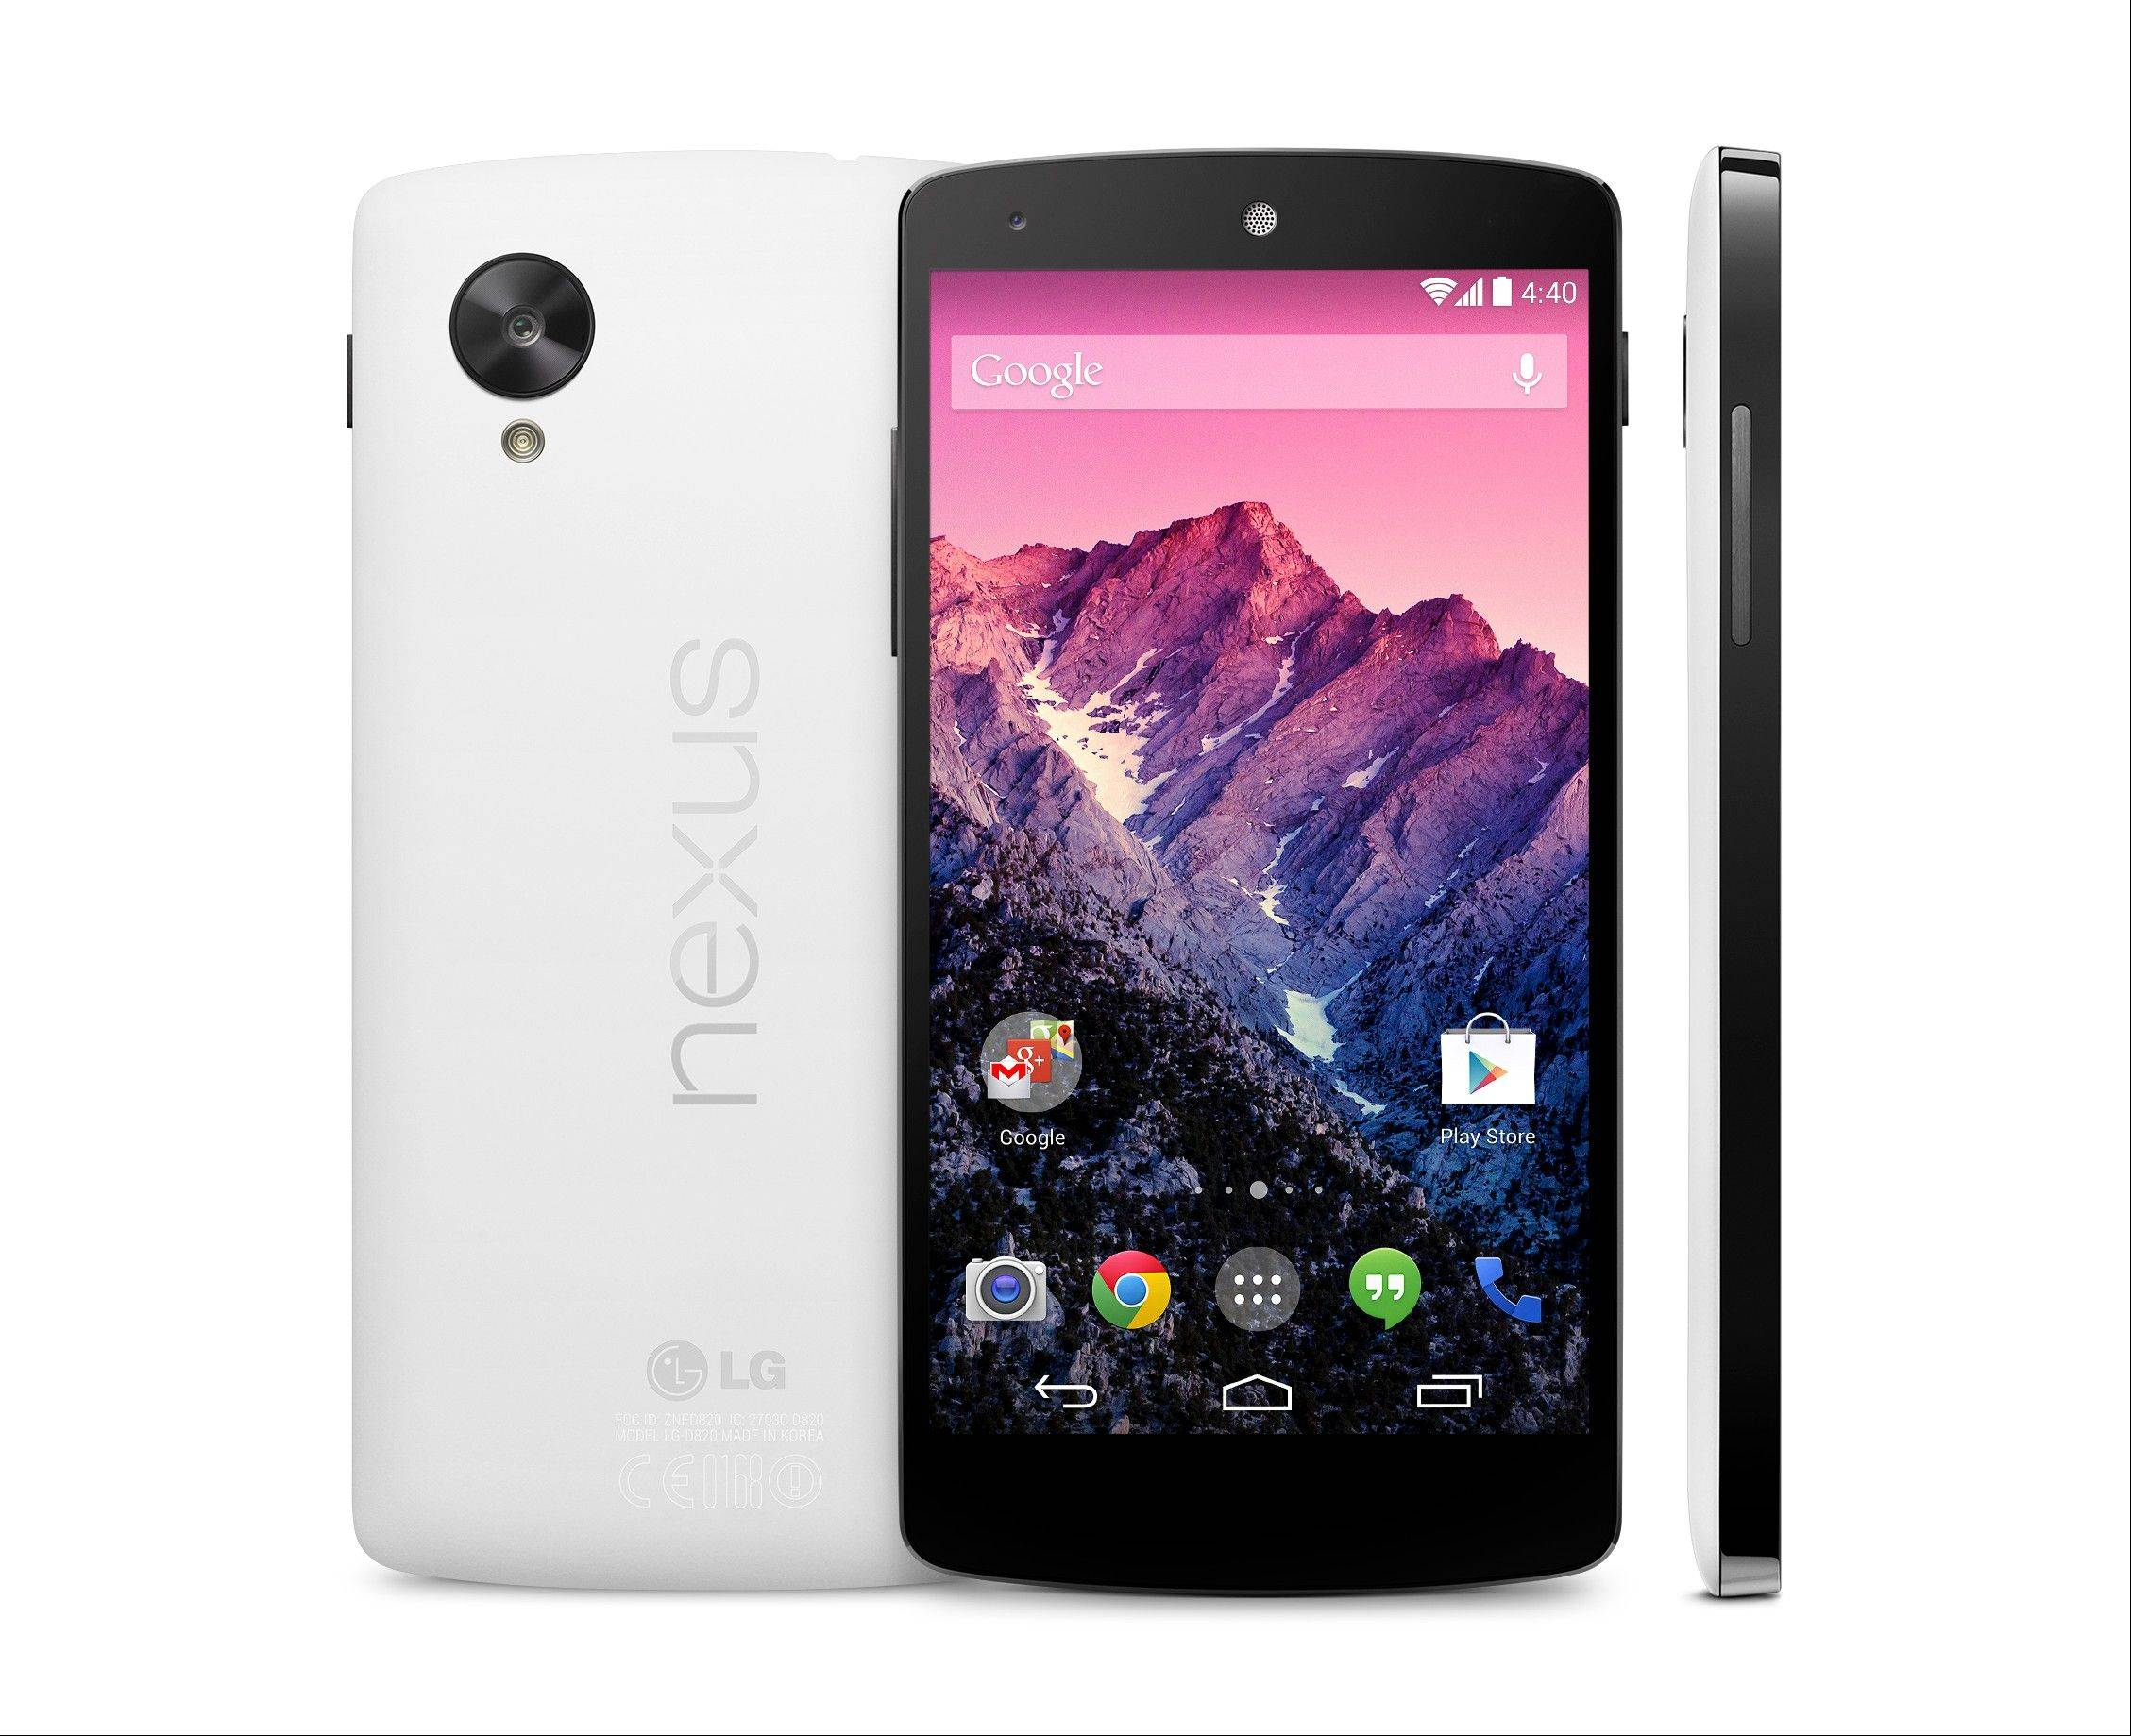 This image provided by Google shows its new Nexus 5 phone, which was unveiled Thursday, Oct. 31, 2013. The Nexus 5 phone is the first device to run on the latest version of Google's Android operating system, nicknamed after the Kit Kat candy bar. The phone and software are designed to learn and anticipate a person�s interest and needs. (AP Photo/Google)